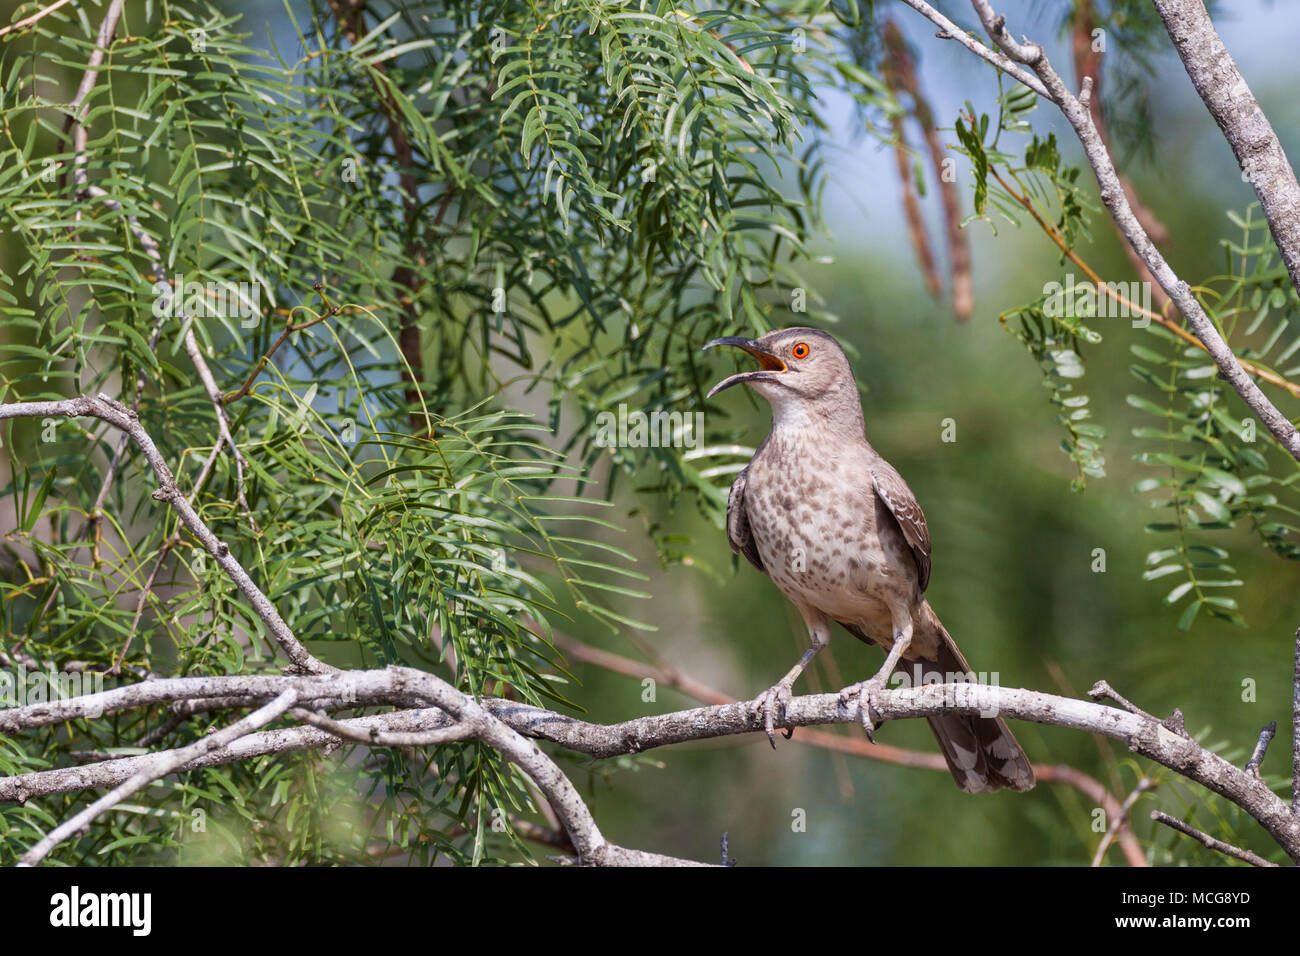 Curve-billed Thrasher, Toxostoma curvirostre, a perching bird of the thrasher group, trying to keep cool on a ranch in South Texas. - Stock Image